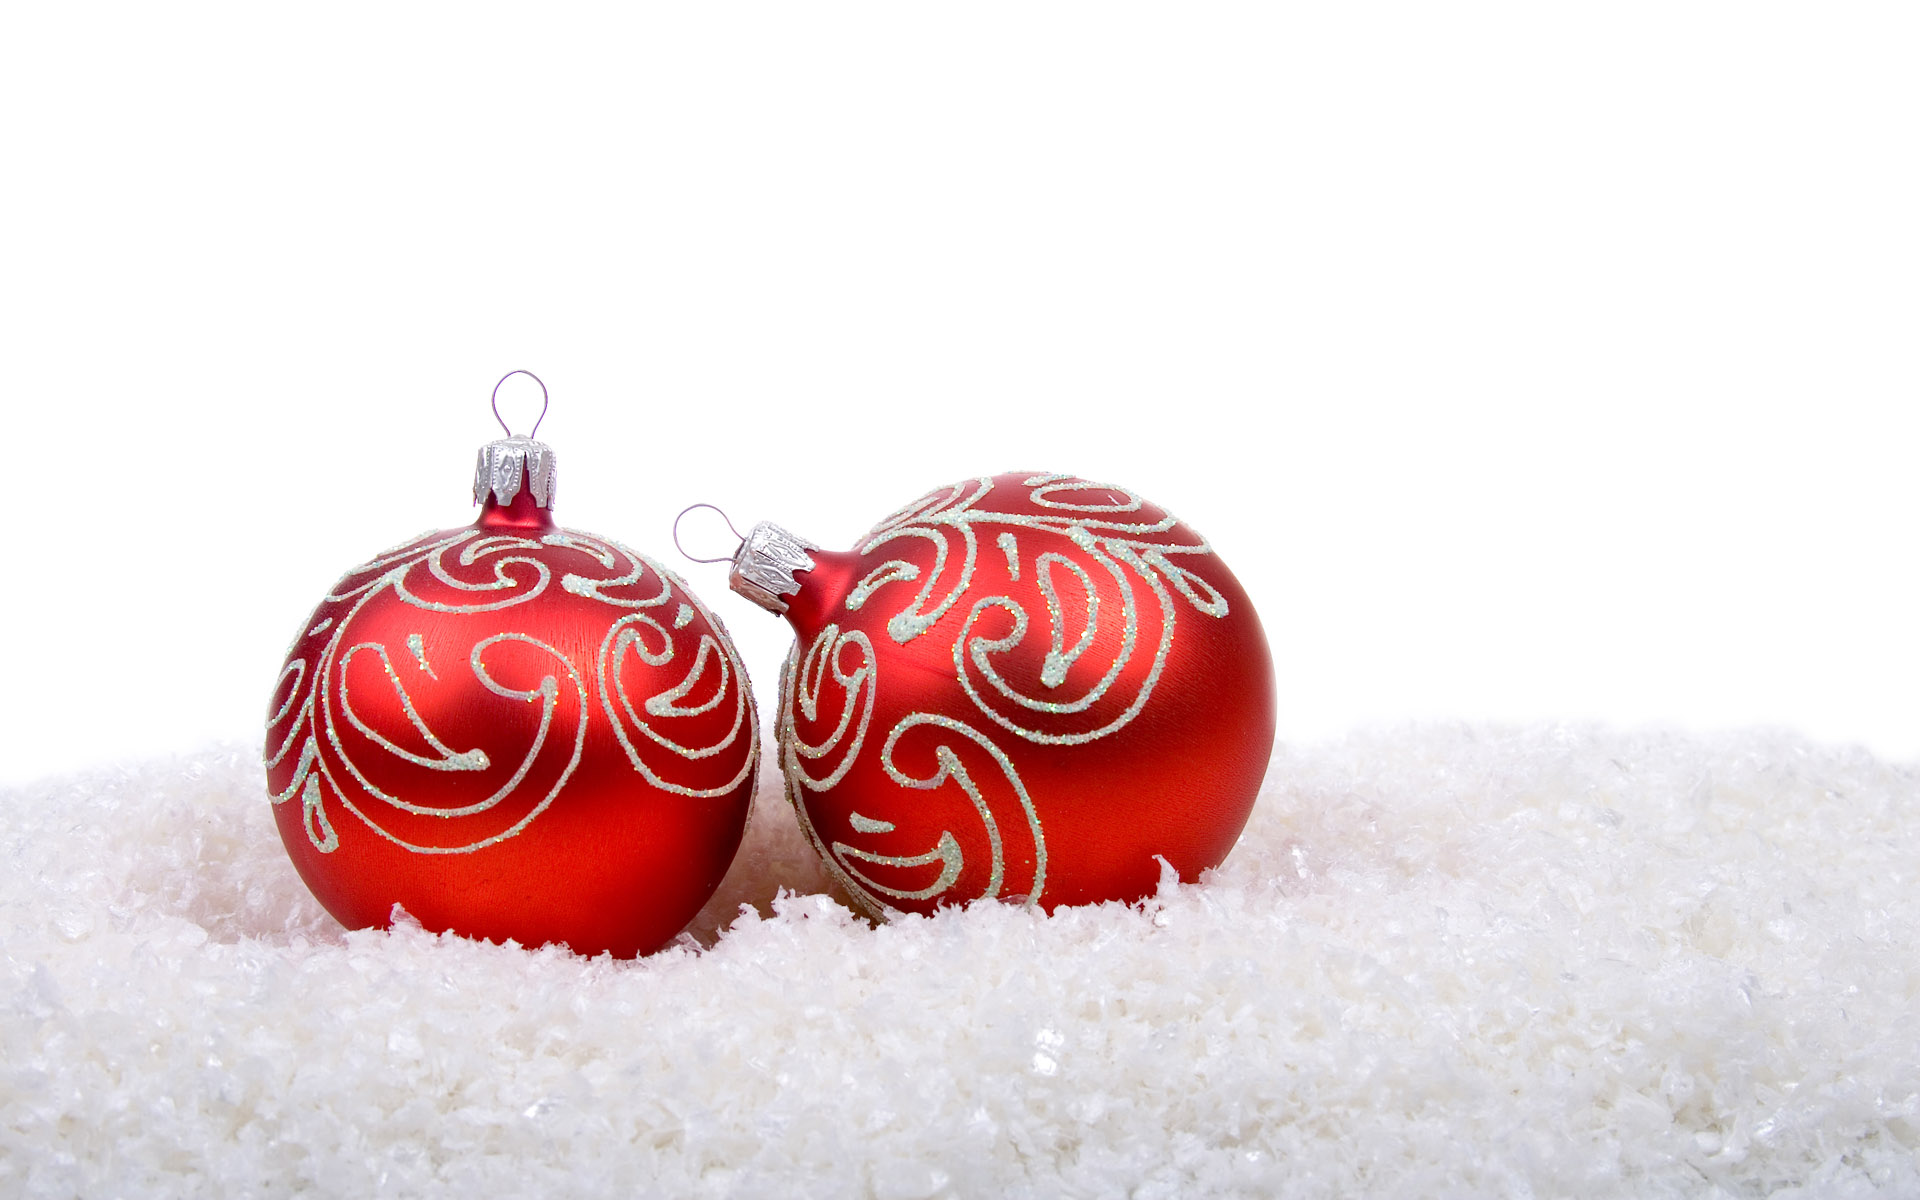 Christmas Ornament Images Free